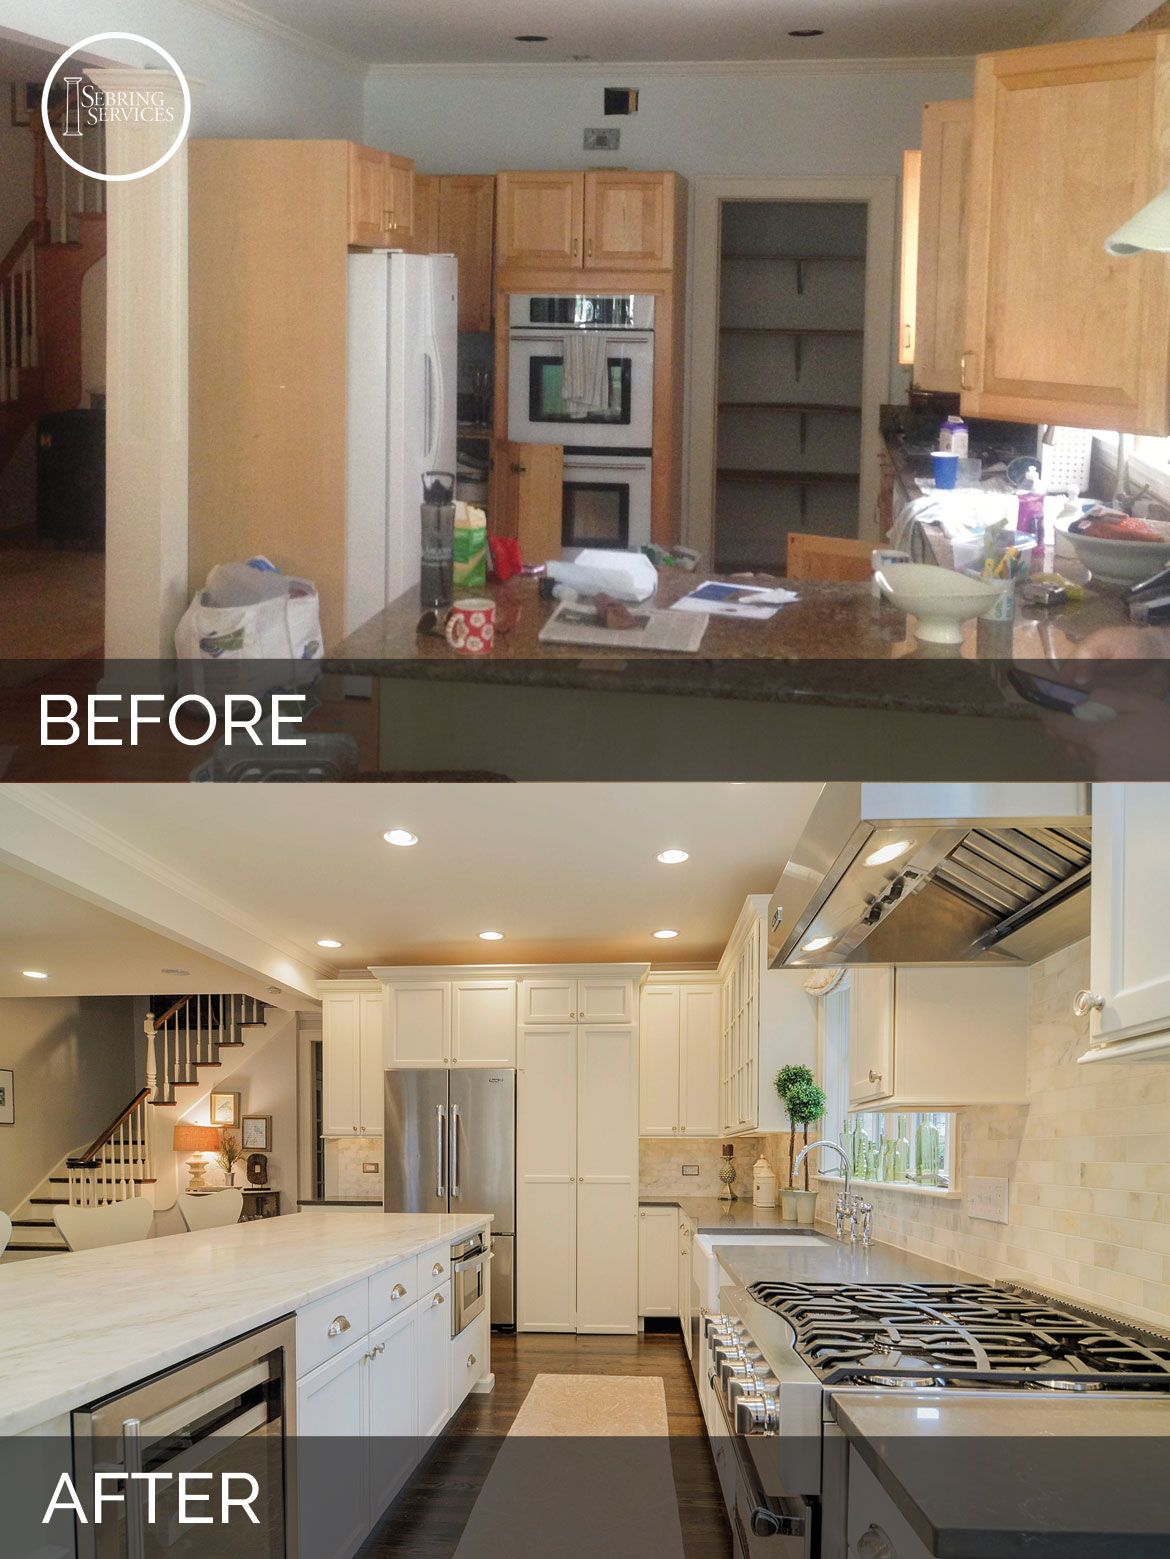 Ben ellen 39 s kitchen before after pictures kitchens for Home kitchen renovation ideas